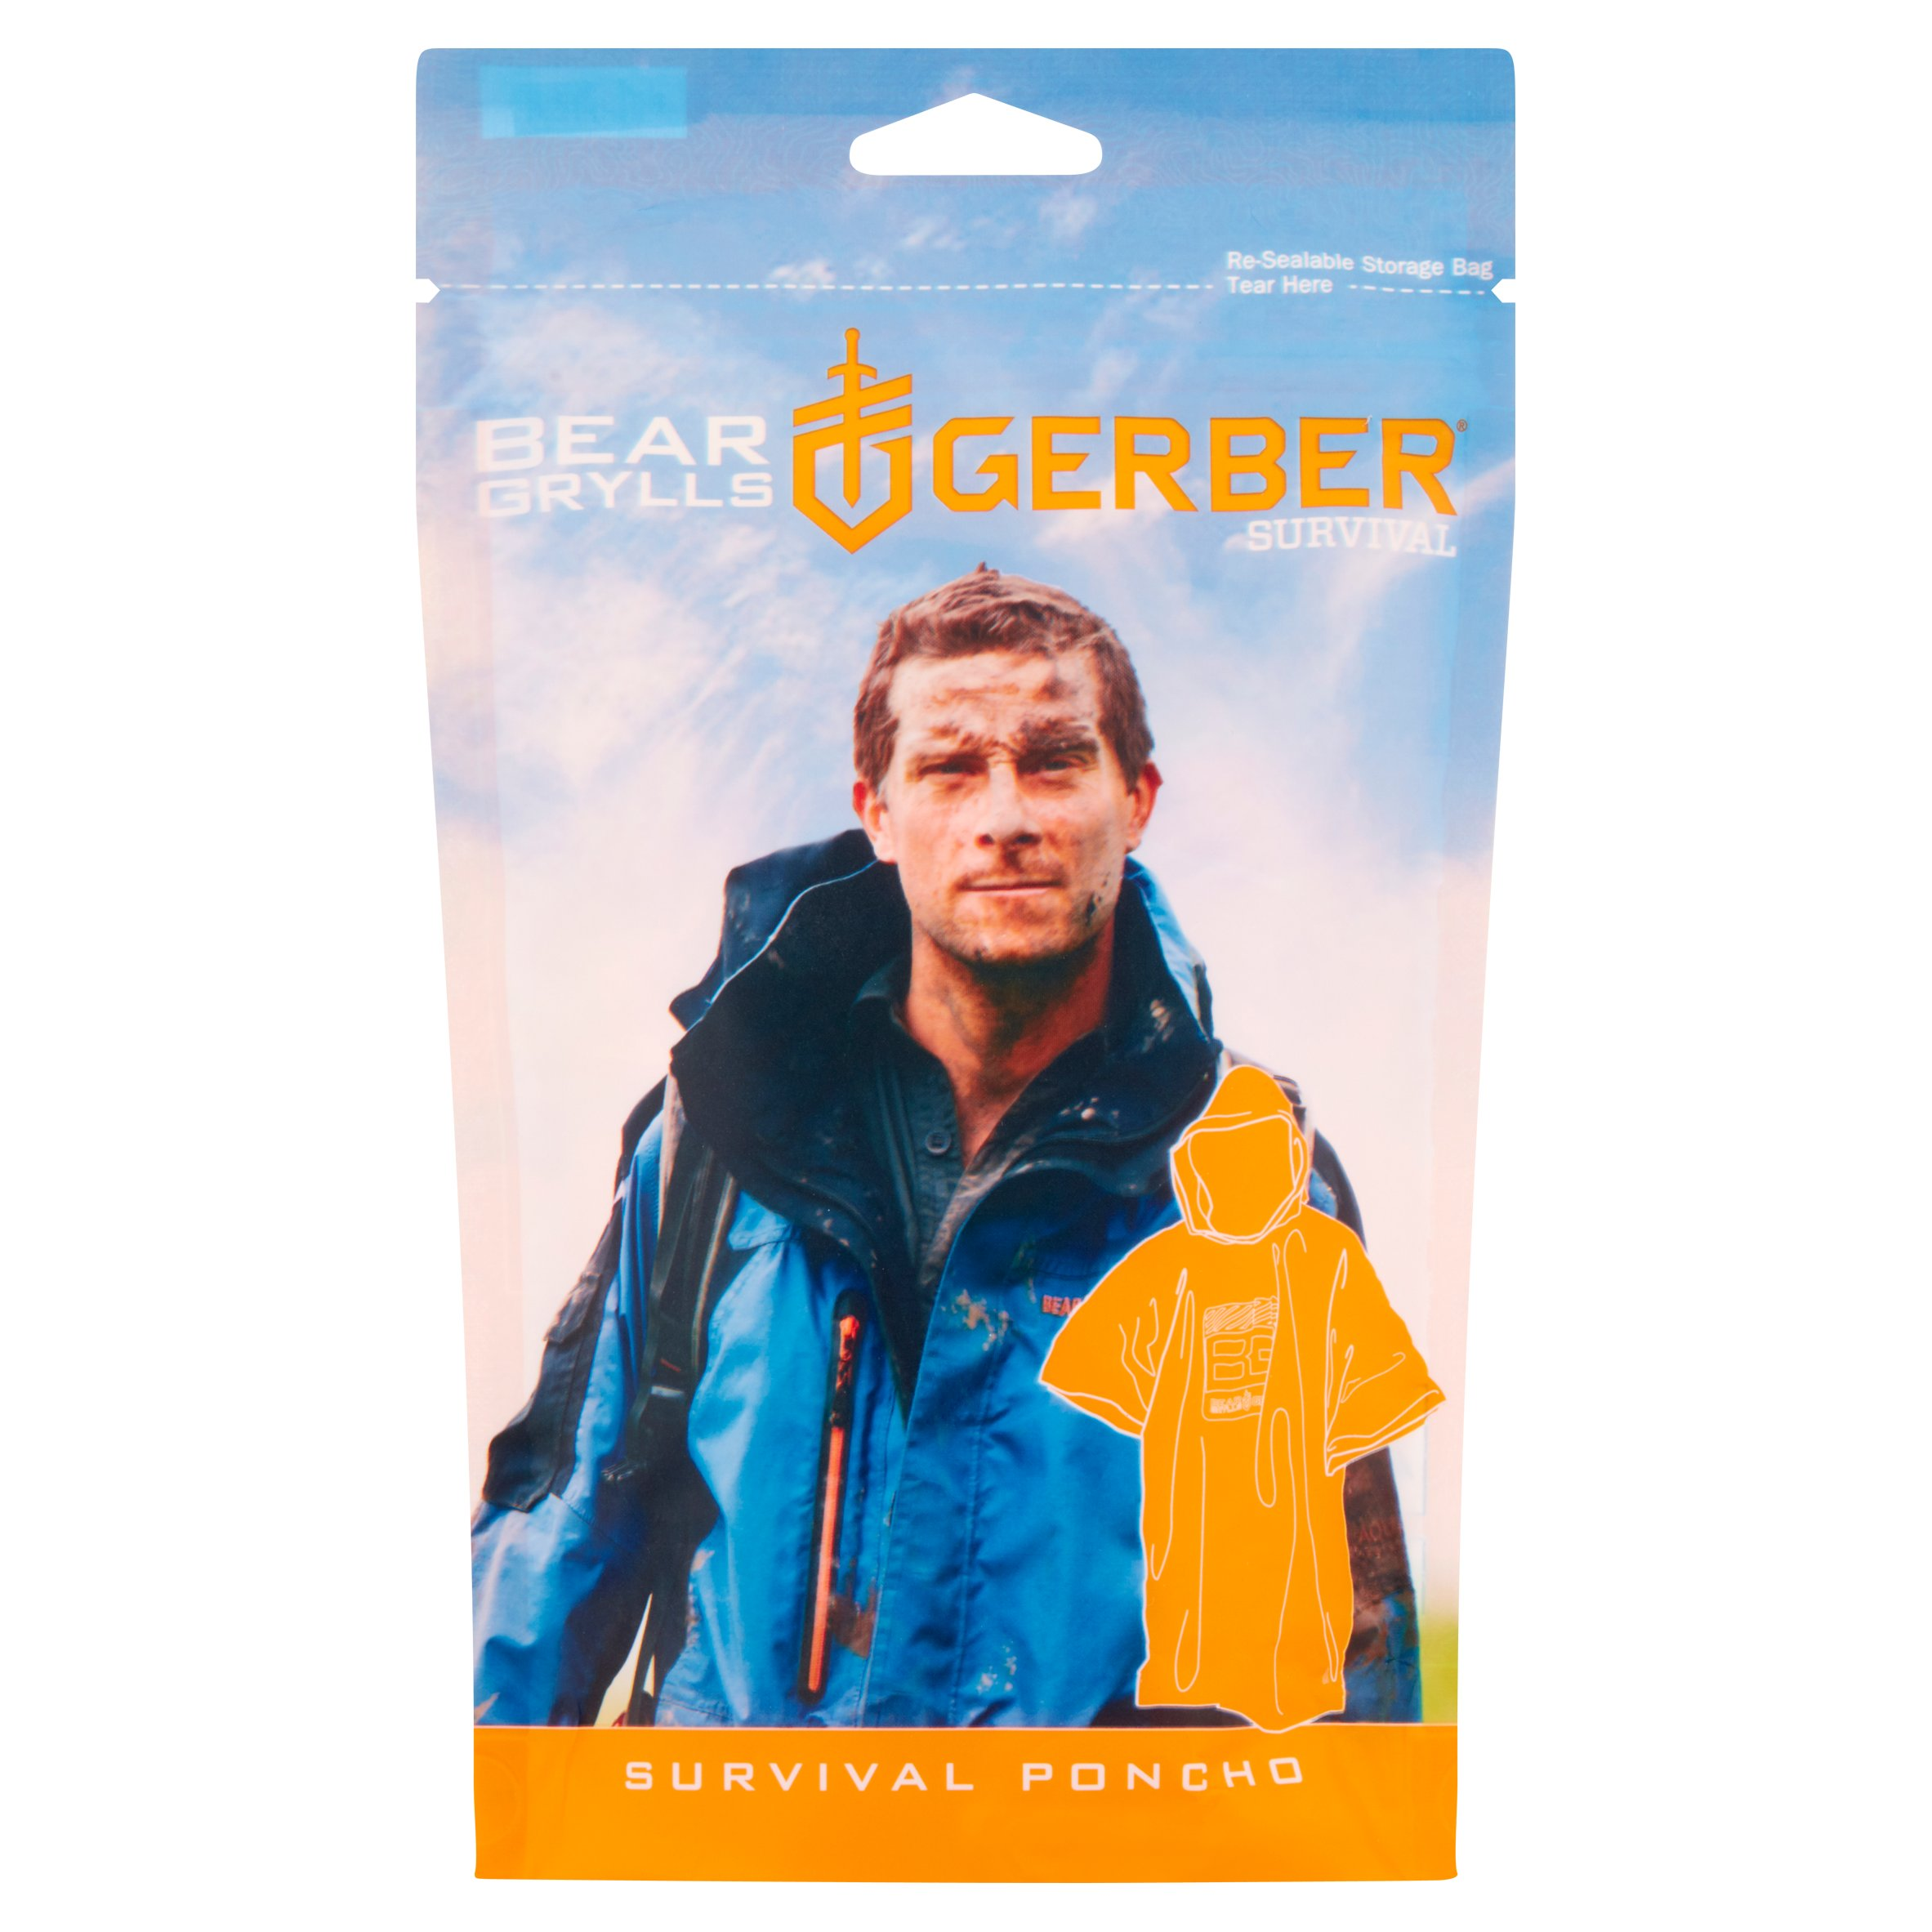 Click here to buy Gerber Bear Grylls Survival Poncho by Gerber Blades.